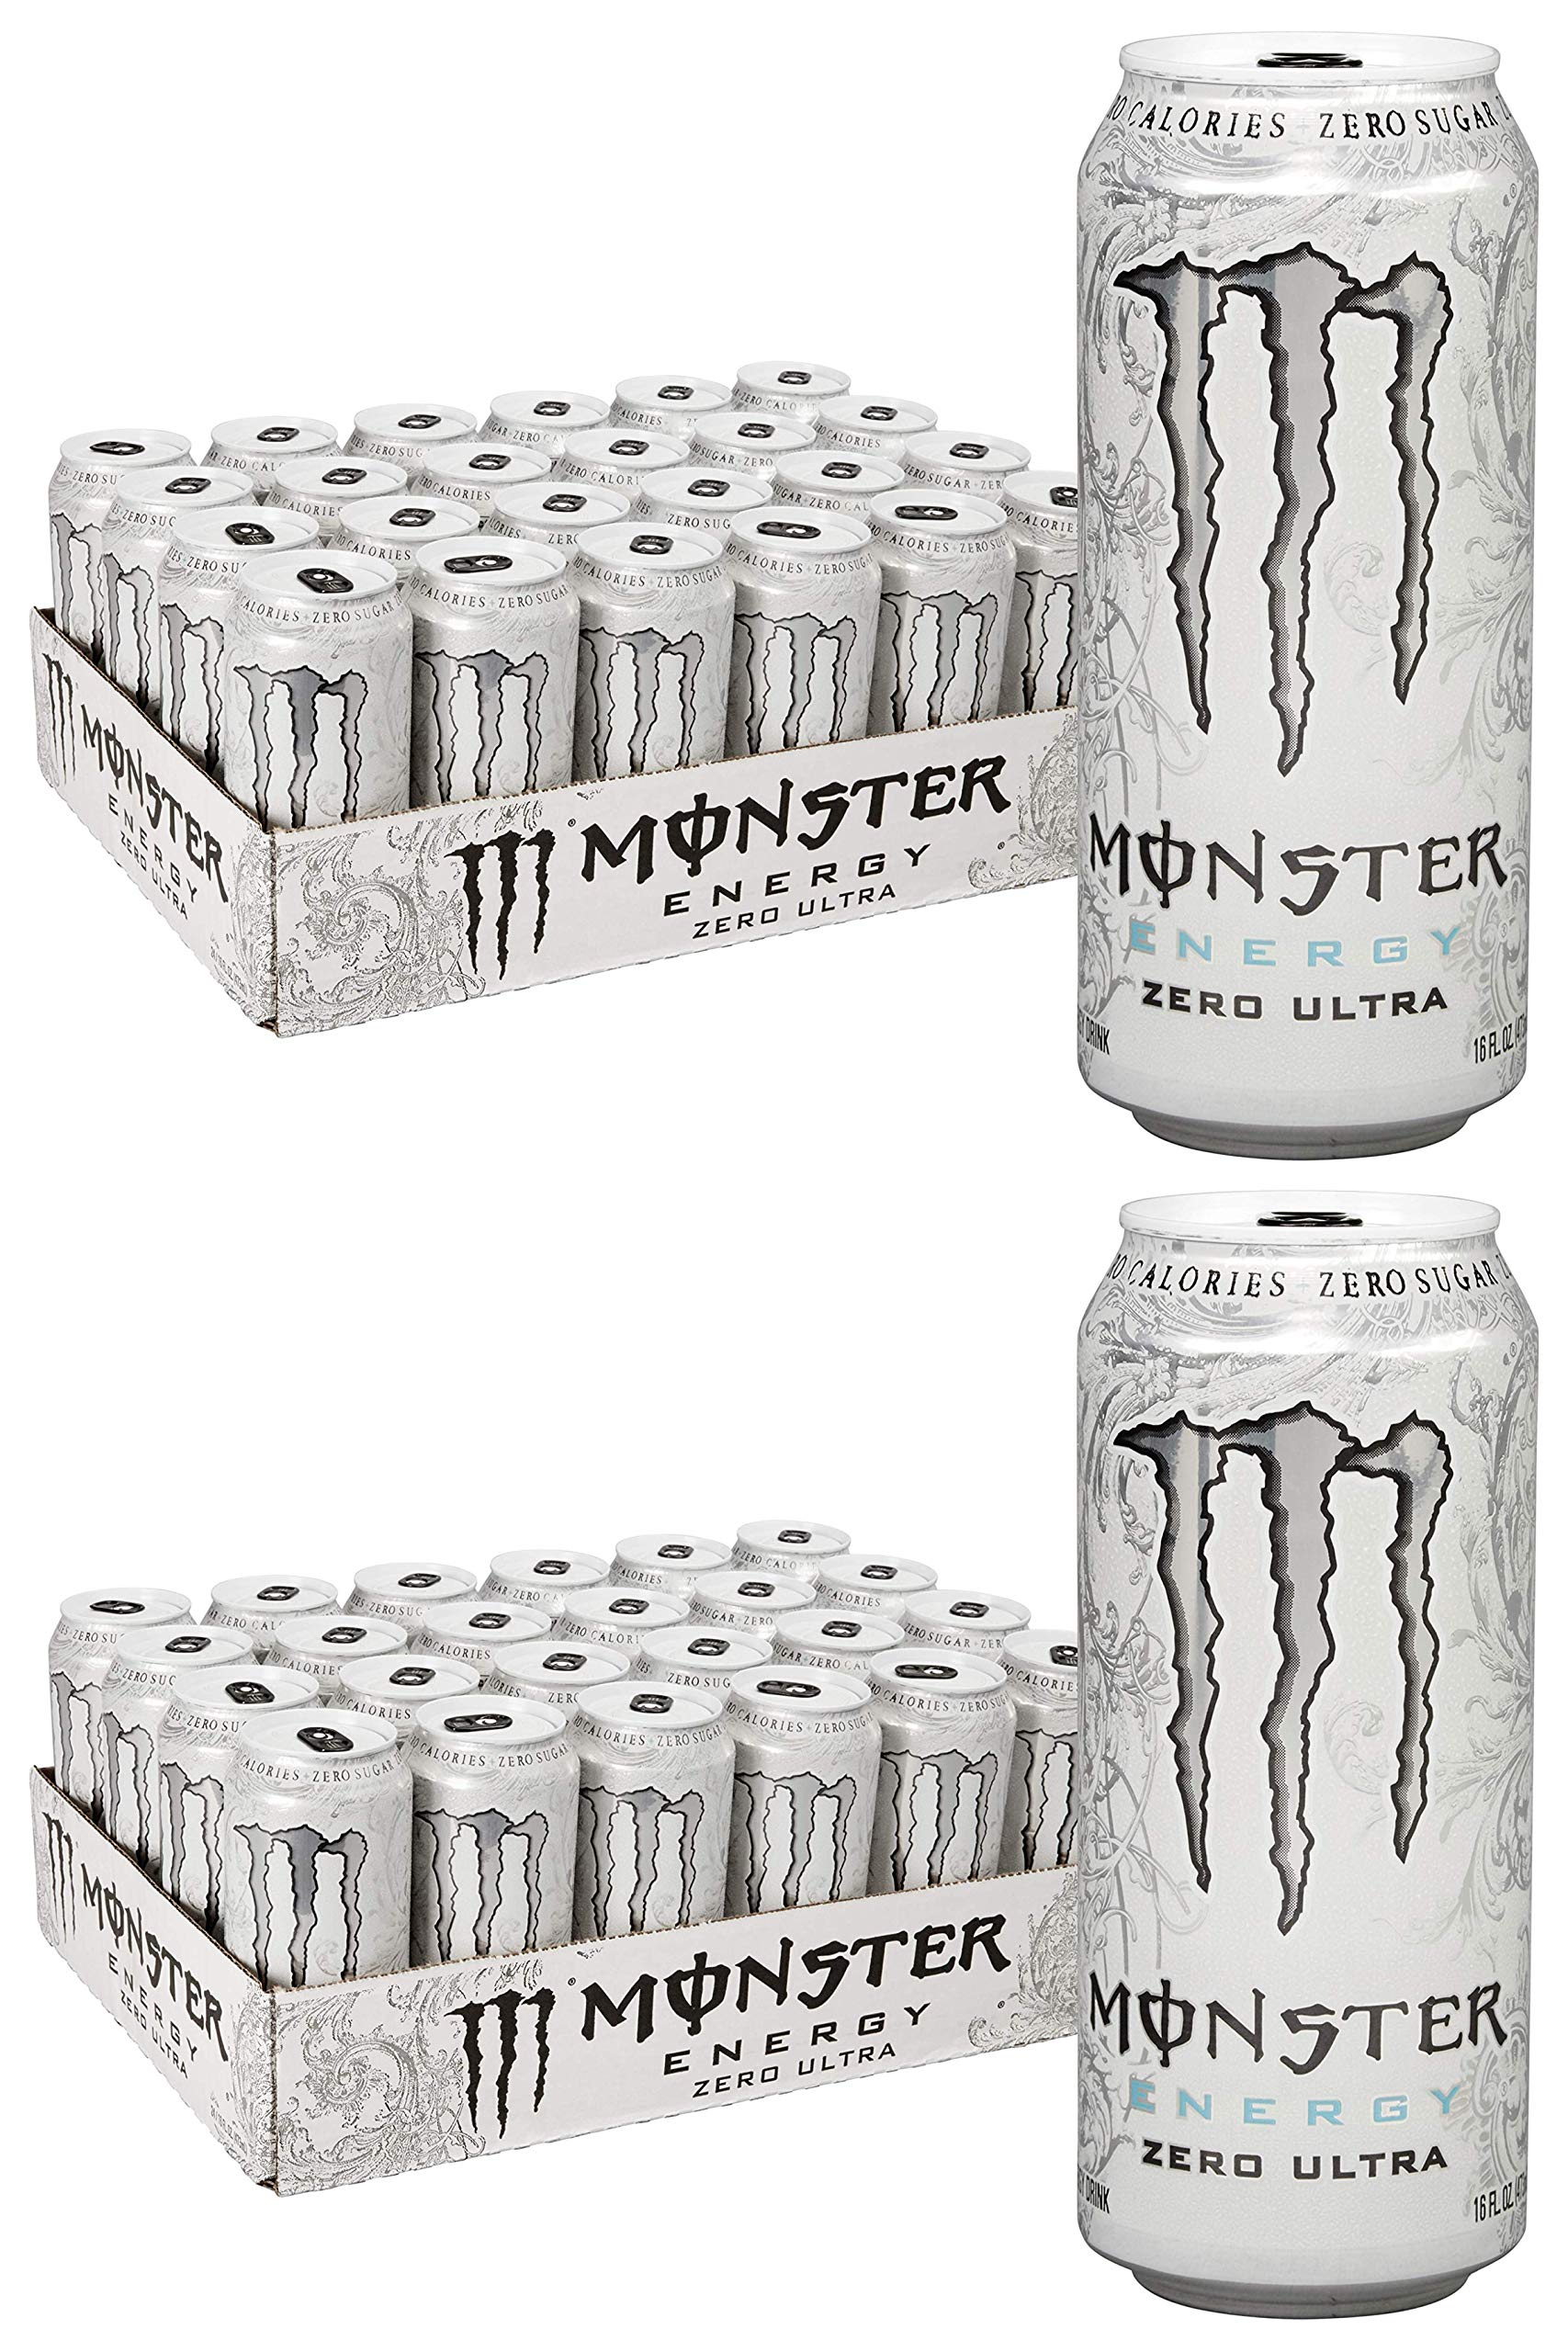 MLLSH Zero Ultra, Sugar Free Energy Drink, 16 Ounce, 2 Cases of 24 Cans